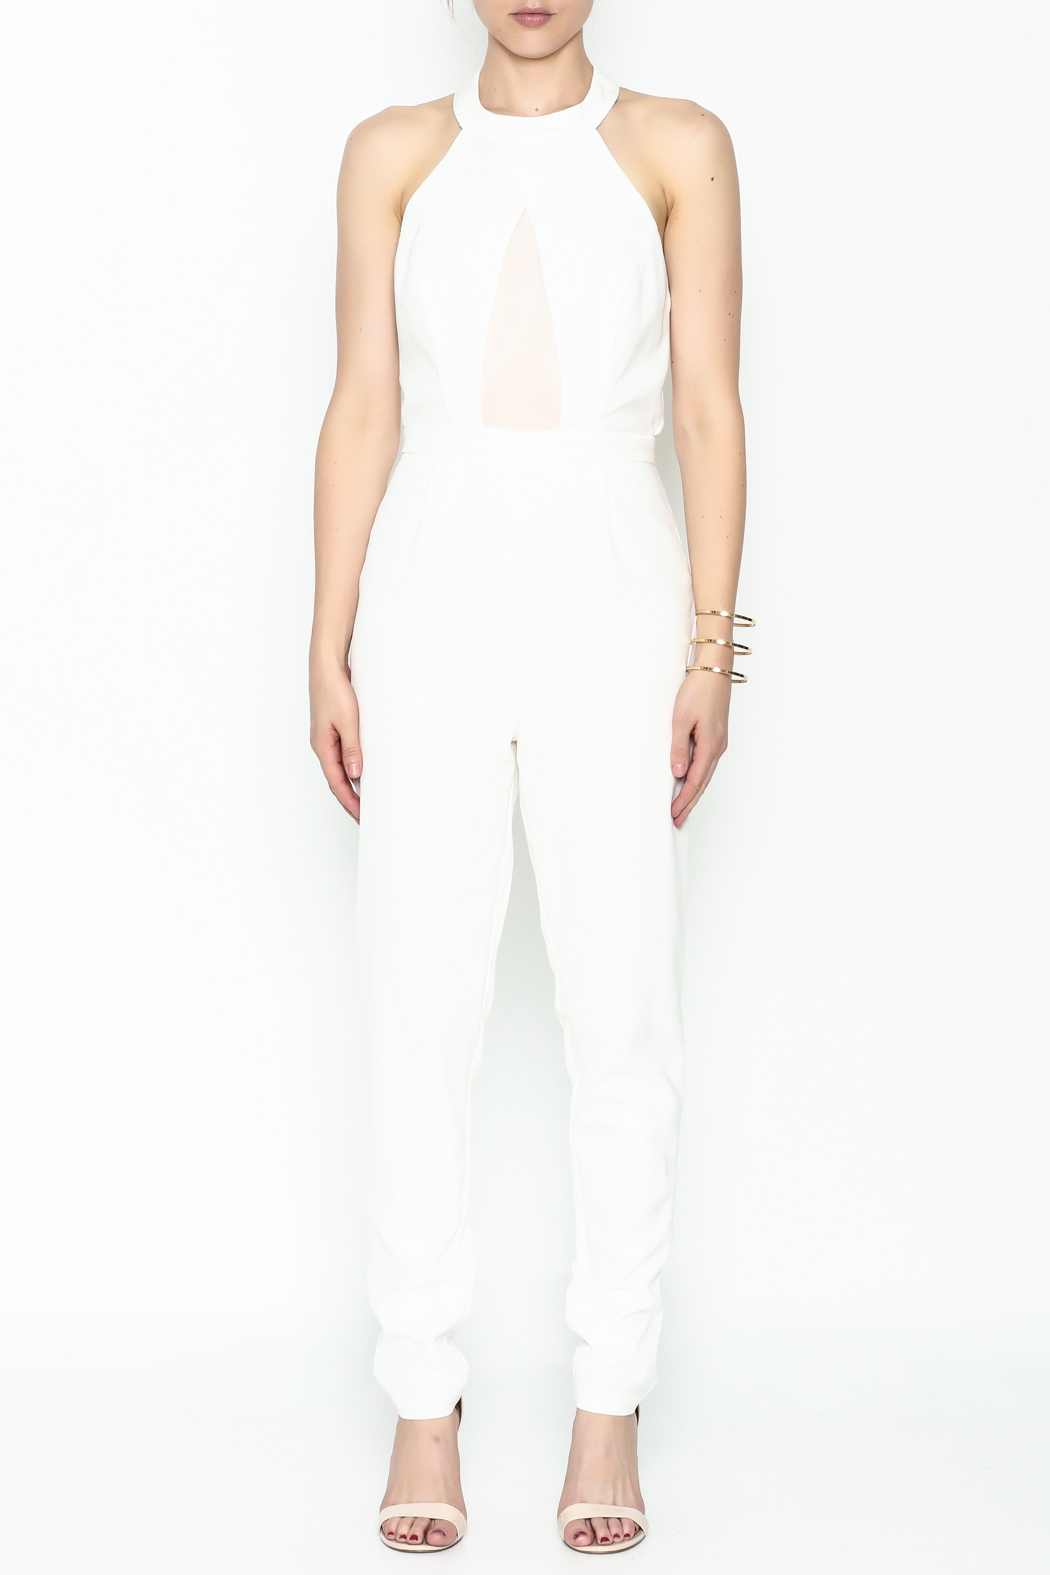 lucca couture White Halter Jumpsuit - Front Full Image